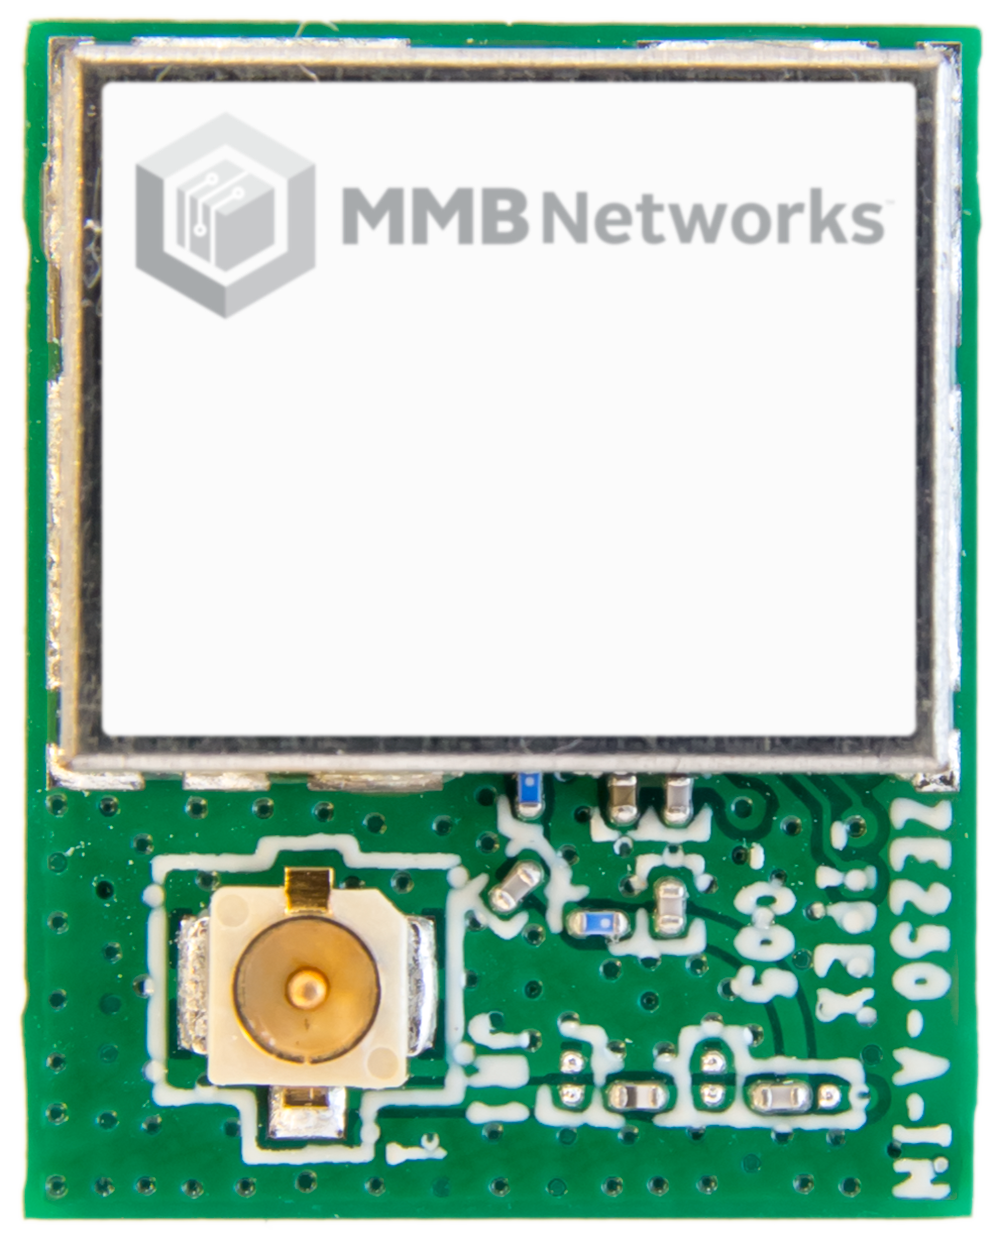 Hardware — MMB Networks